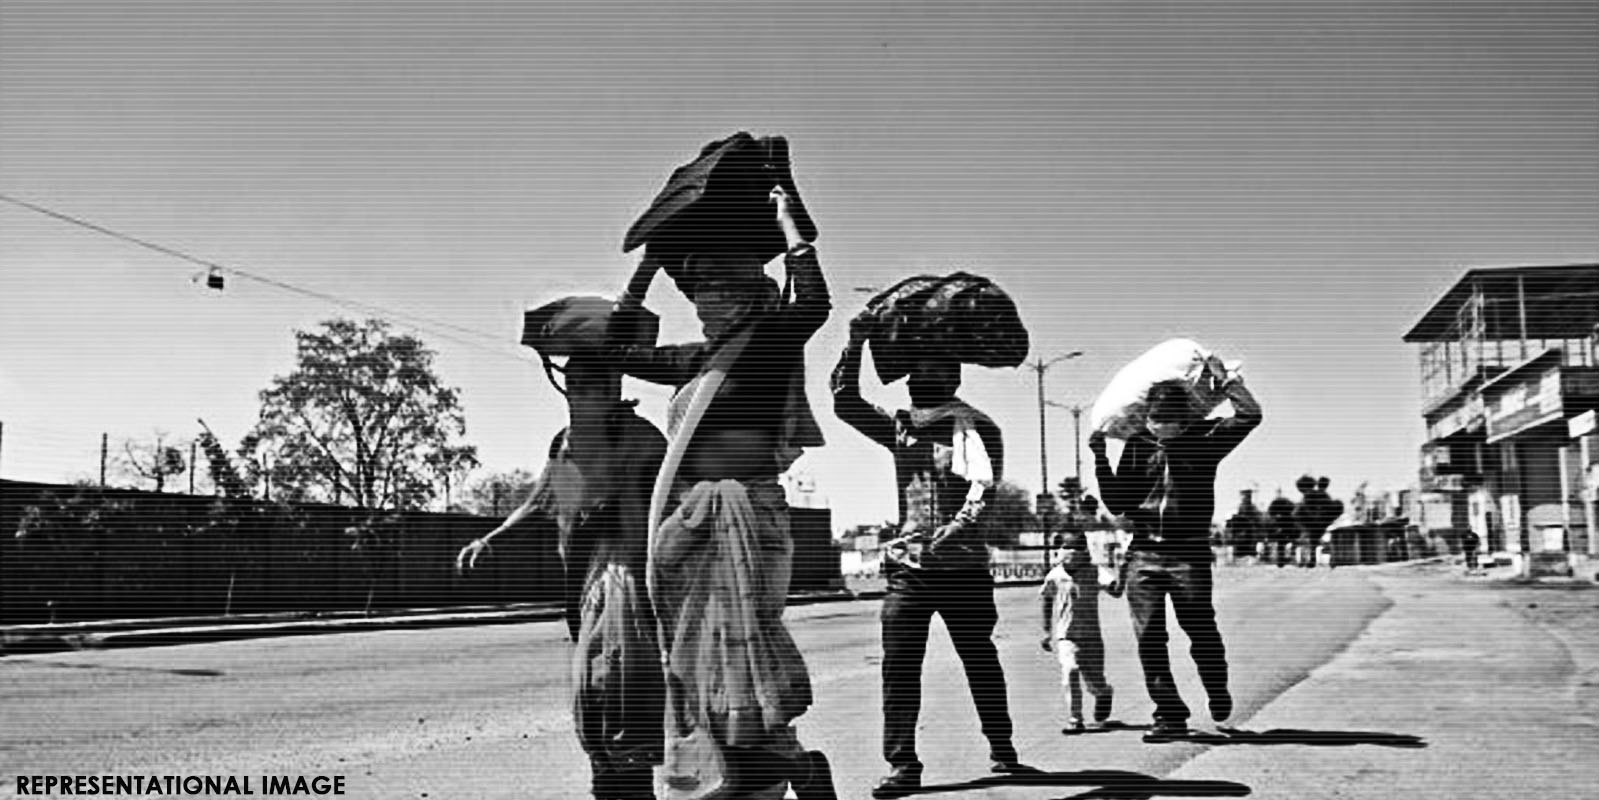 Baddi migrant labourers going back home on foot